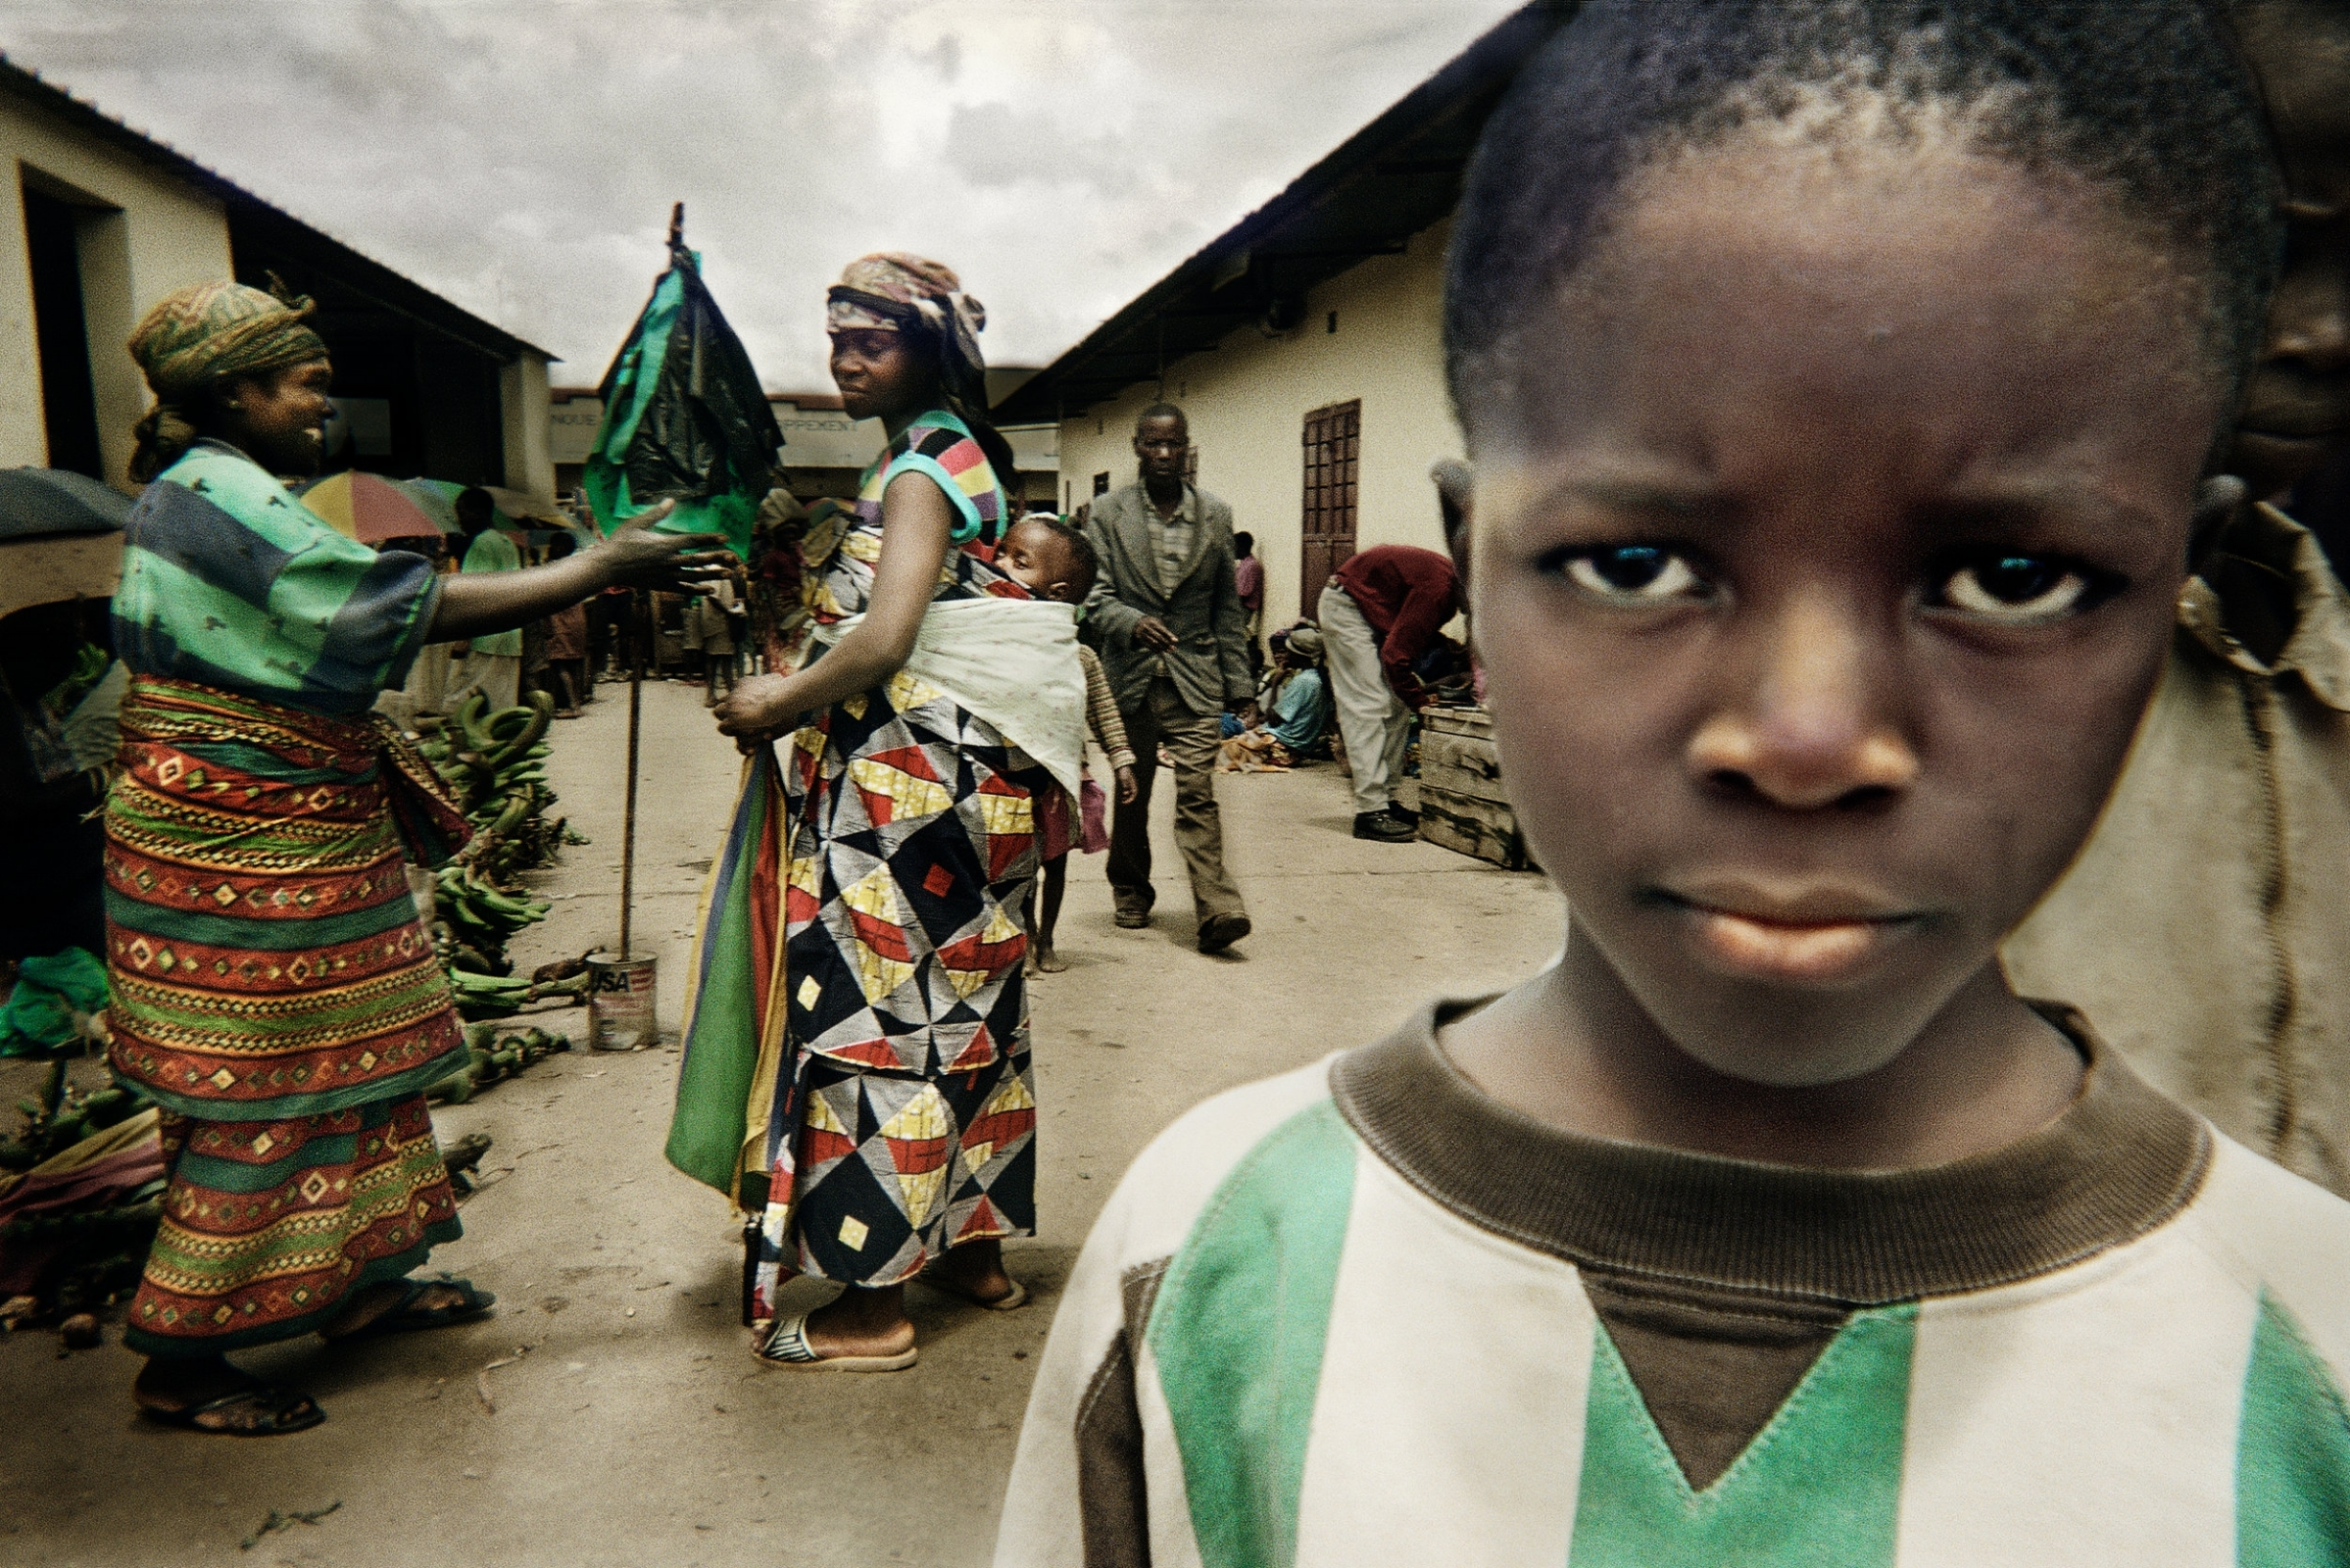 """Rwanda - Annual reoccurring photo workshops were held in Rwanda from 2000 until 2011 with 19 children or """"Camera Kids"""" participating from the Imbabazi Orphanage. See each child's portfolio here."""